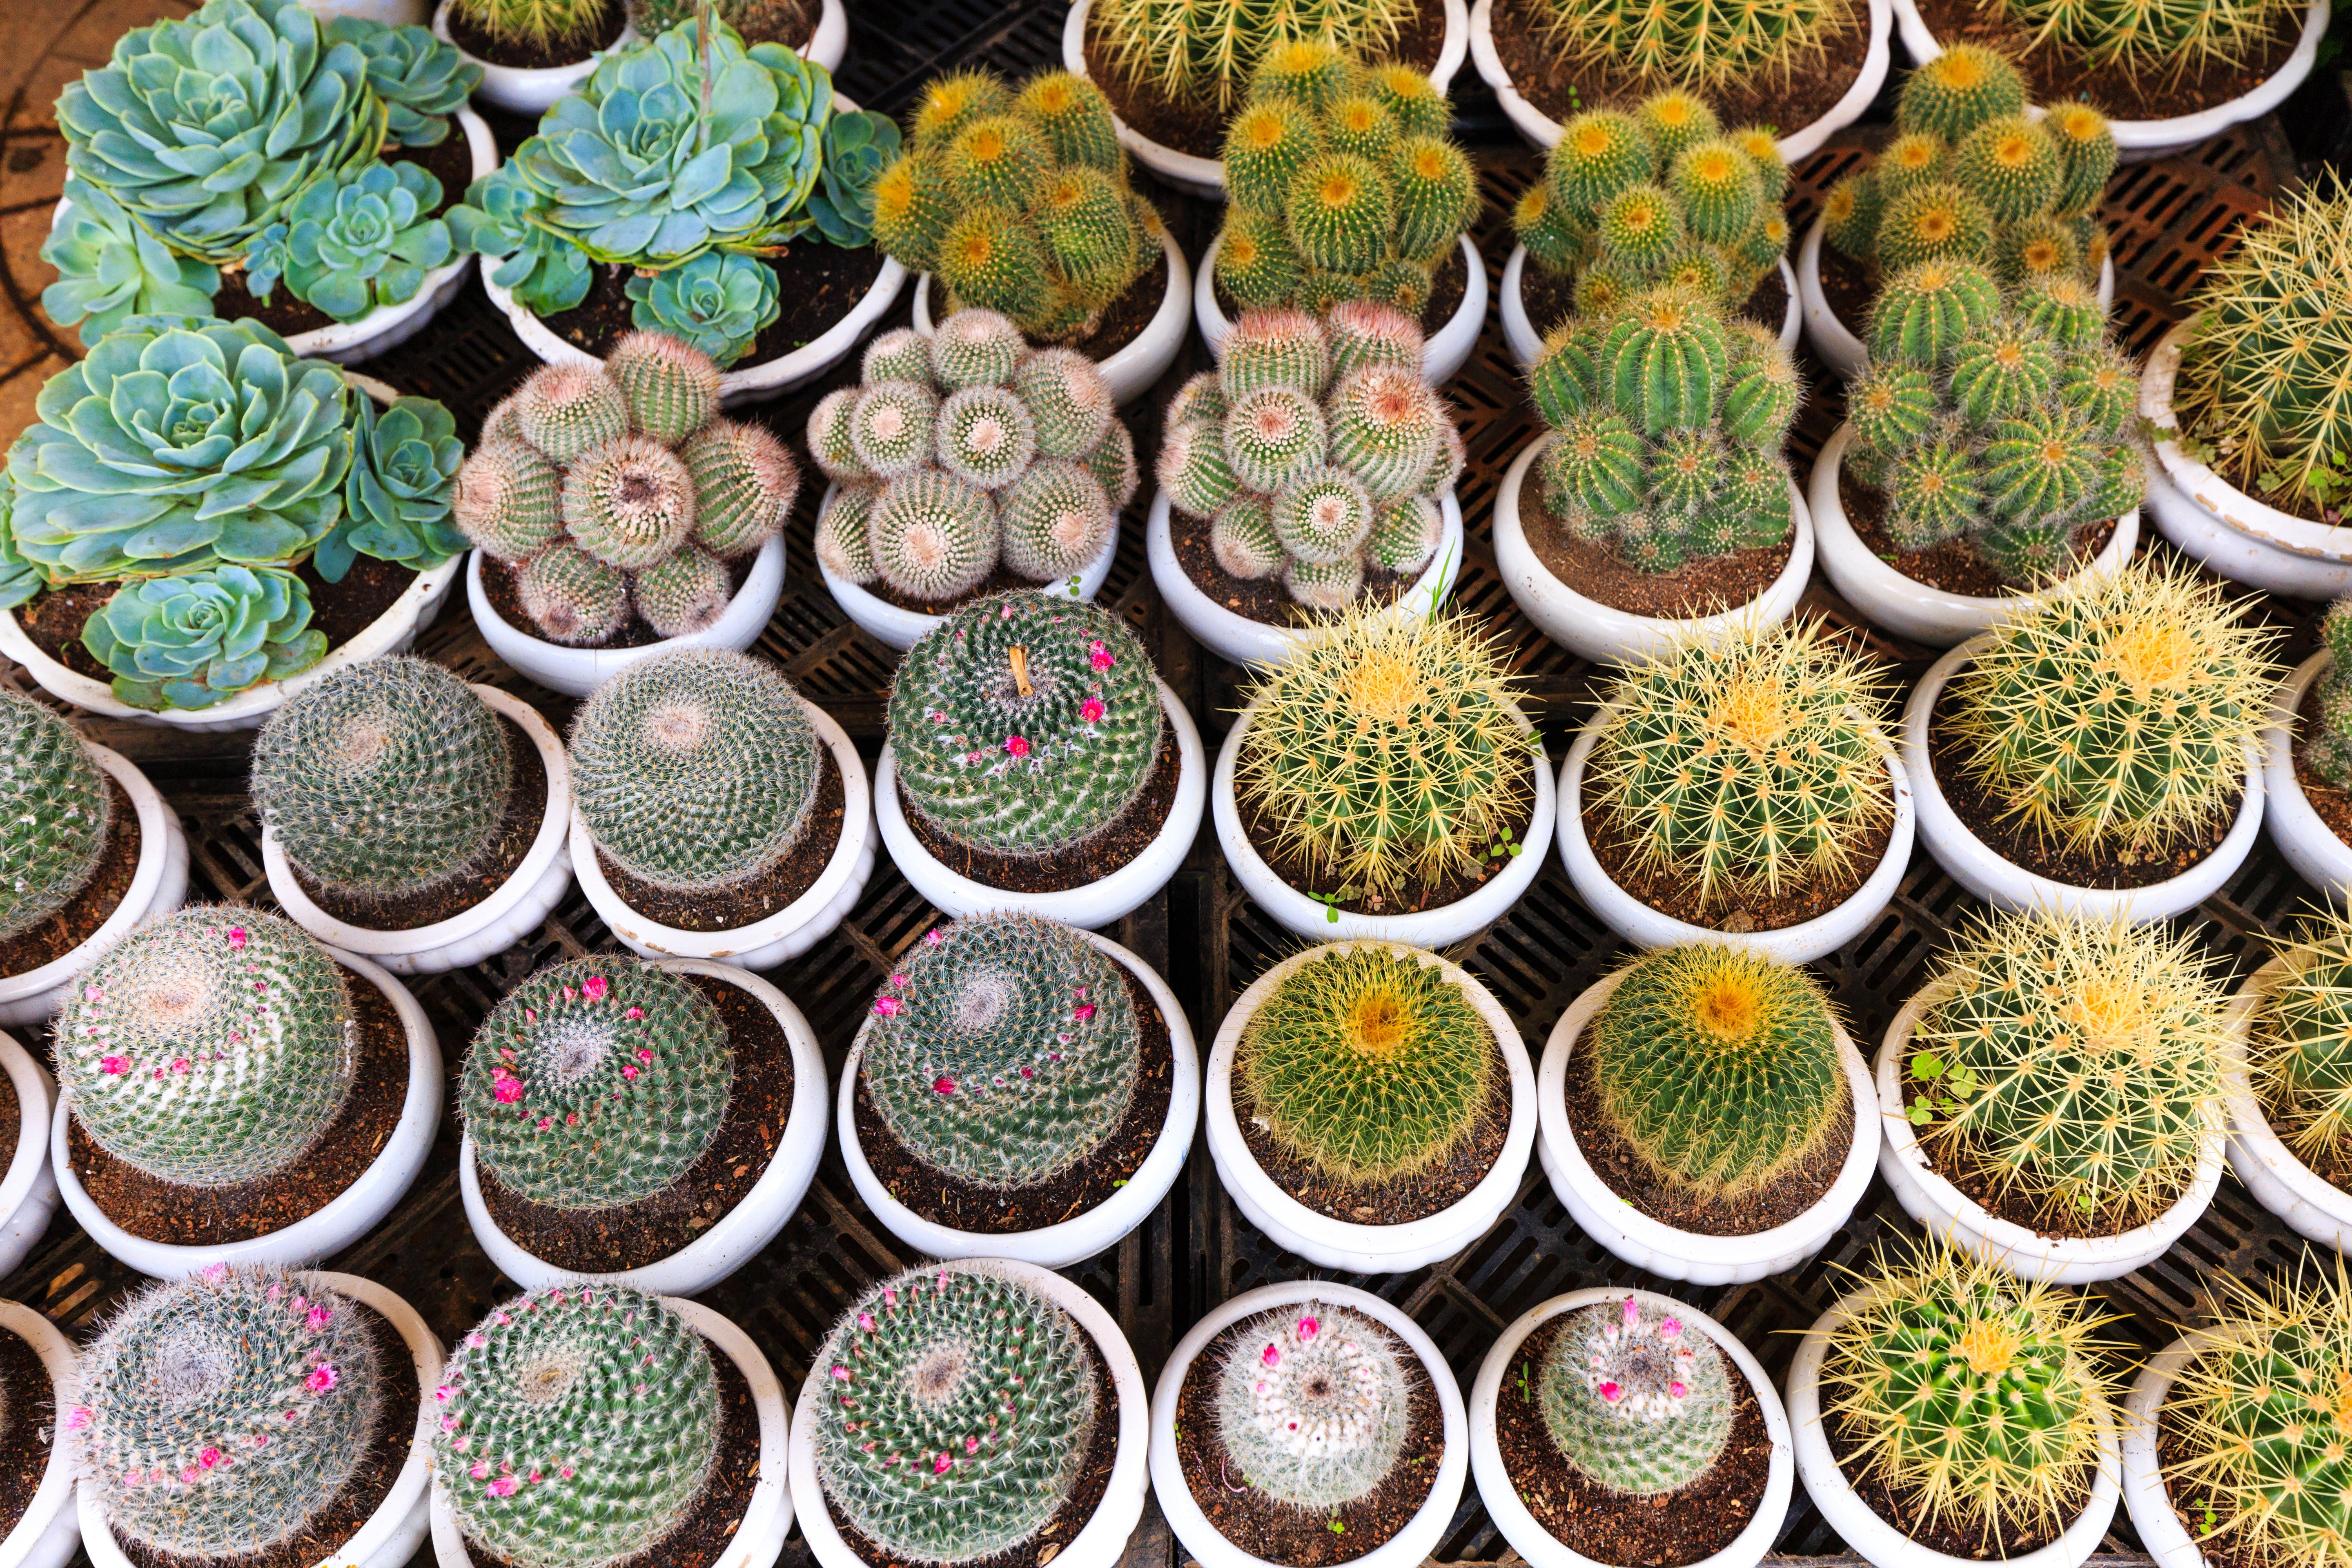 Green Potted Cactus Plants